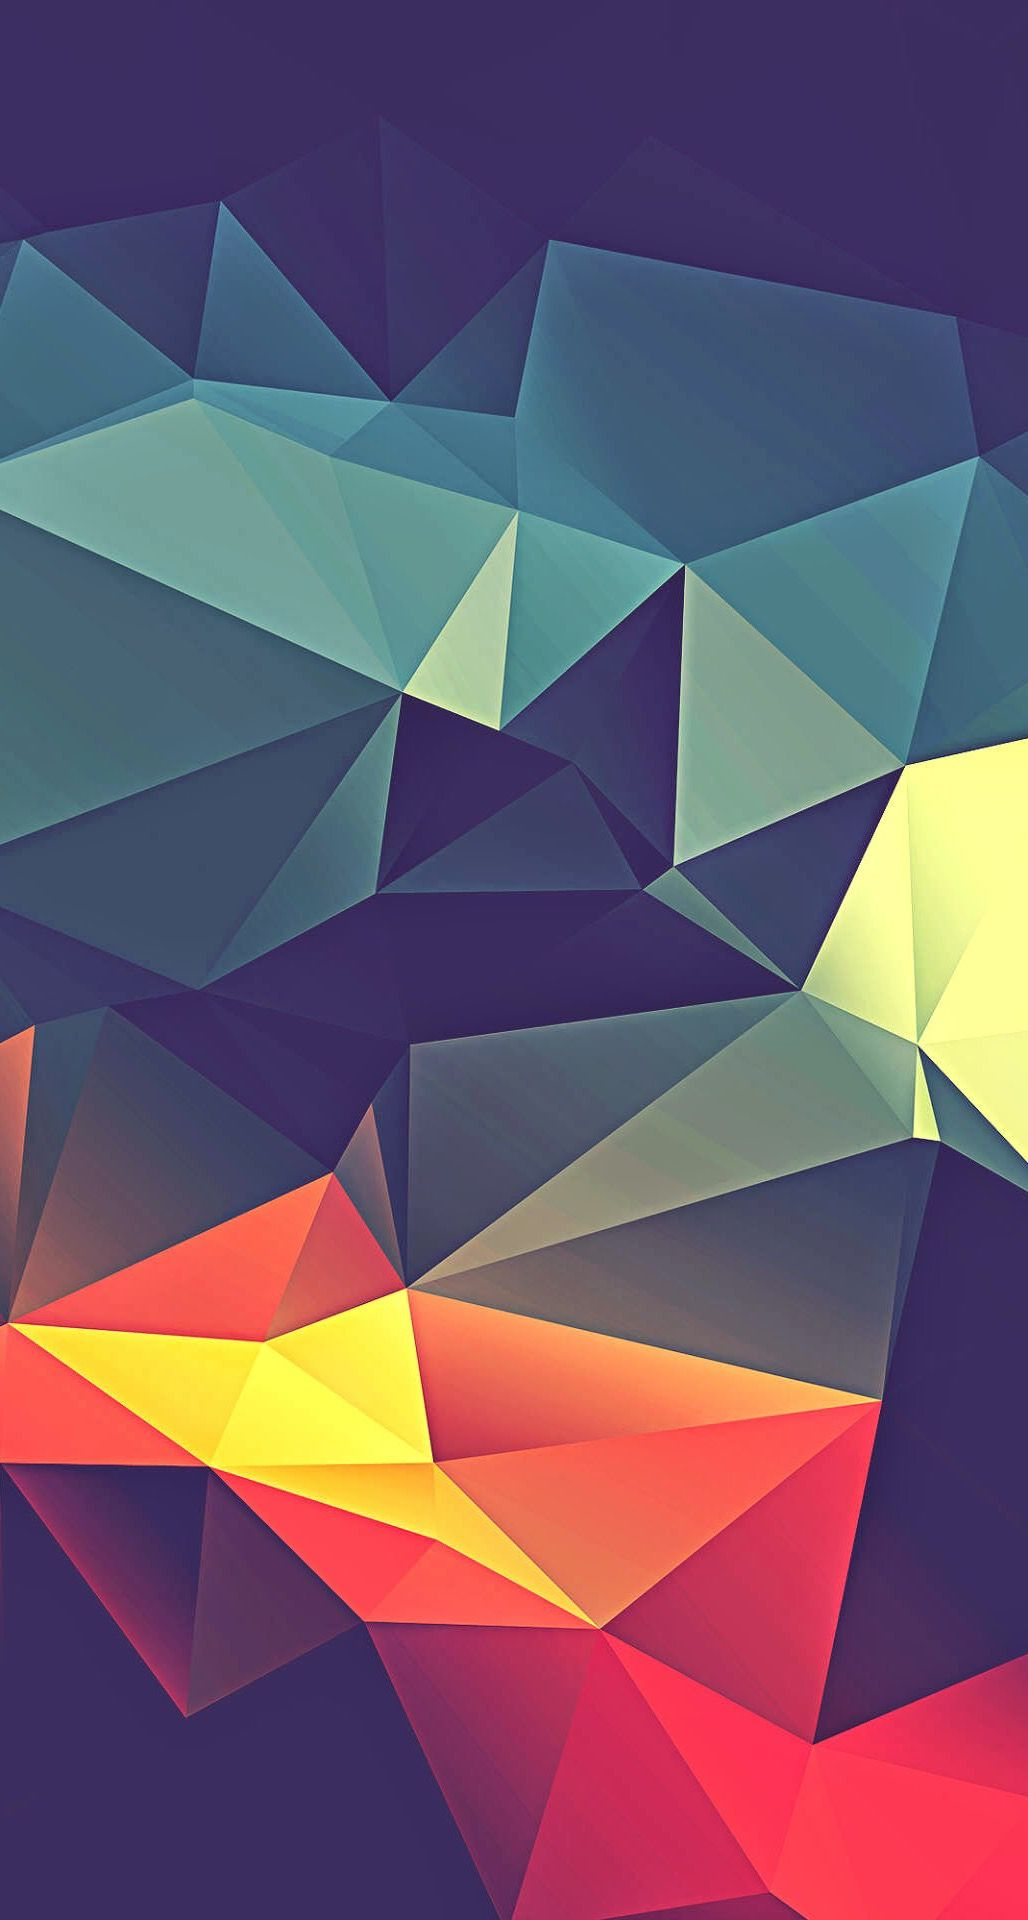 Wallpaper iphone hq - Colorful Polygonal Render Iphone 6 Plus Hd Wallpaper Top 10 Iphone Wallpapers